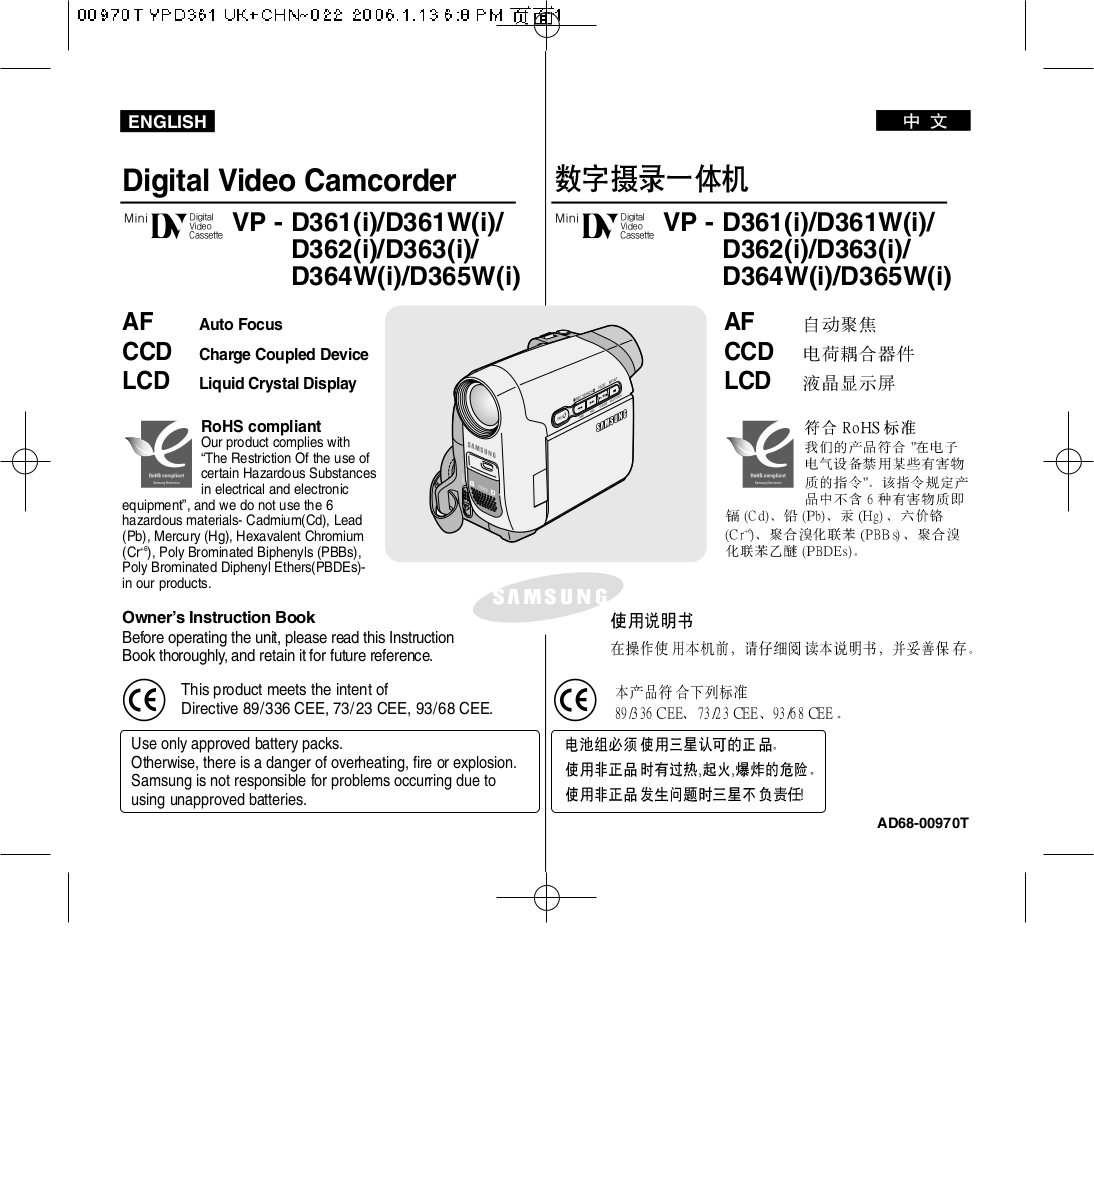 pdf for Samsung Camcorders VP-D361W manual